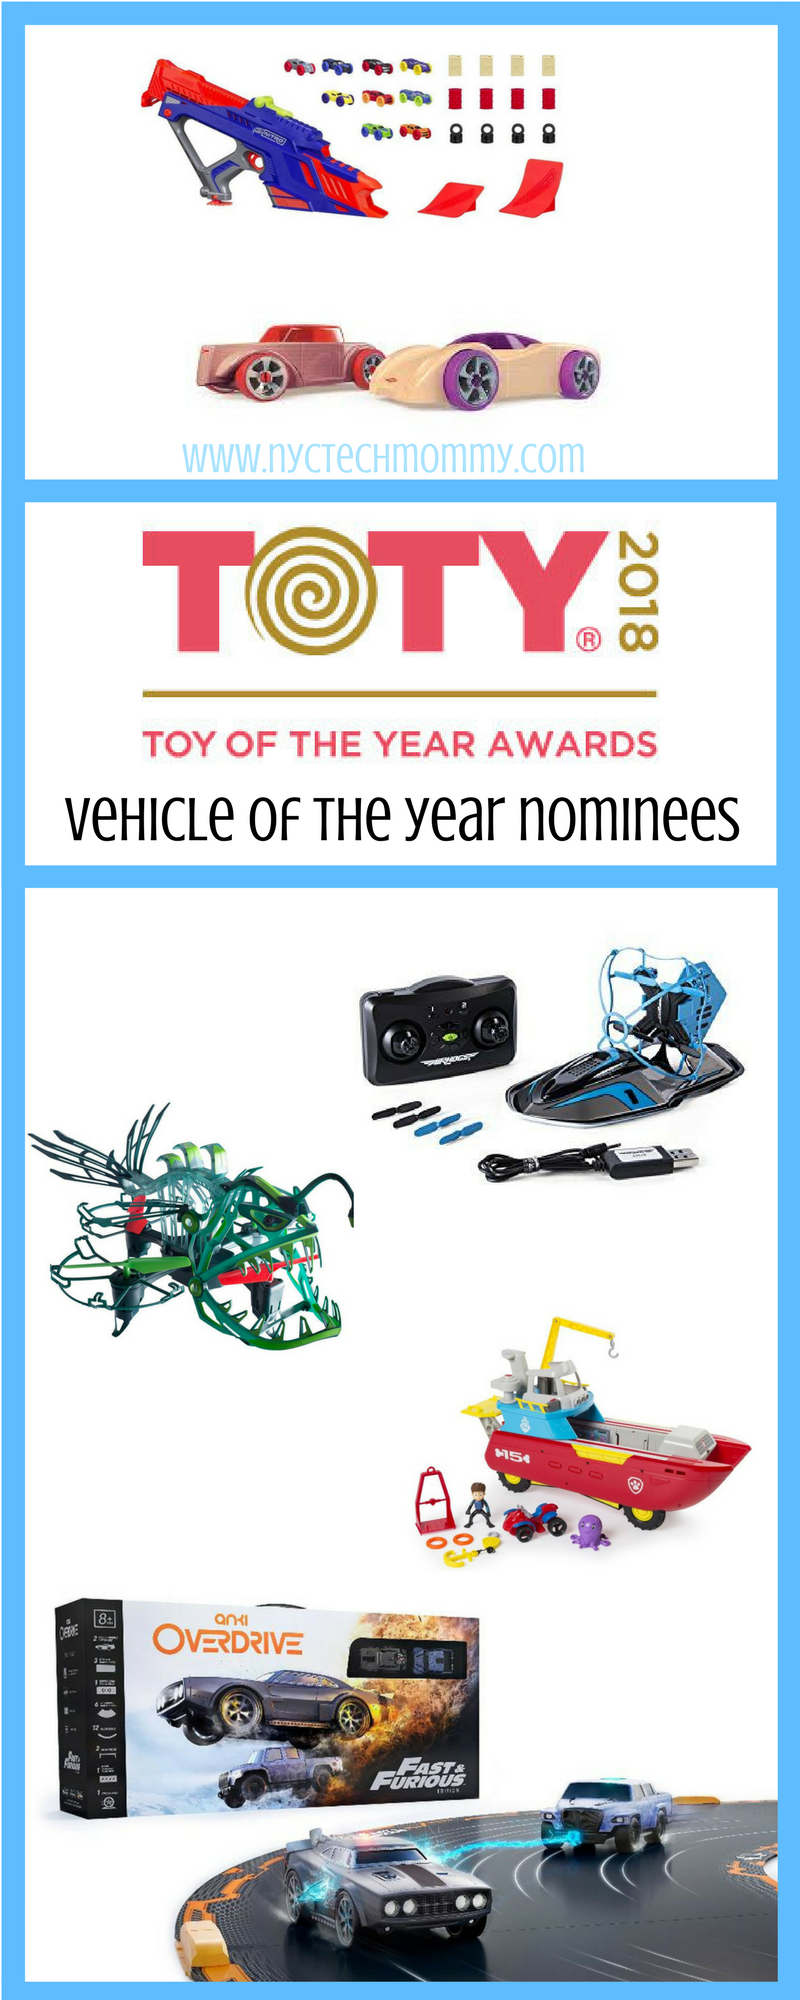 Learn about the 2018 Vehicle Toy of the Year Nominees and cast a vote for your favorite at towards.org #TOTY2018